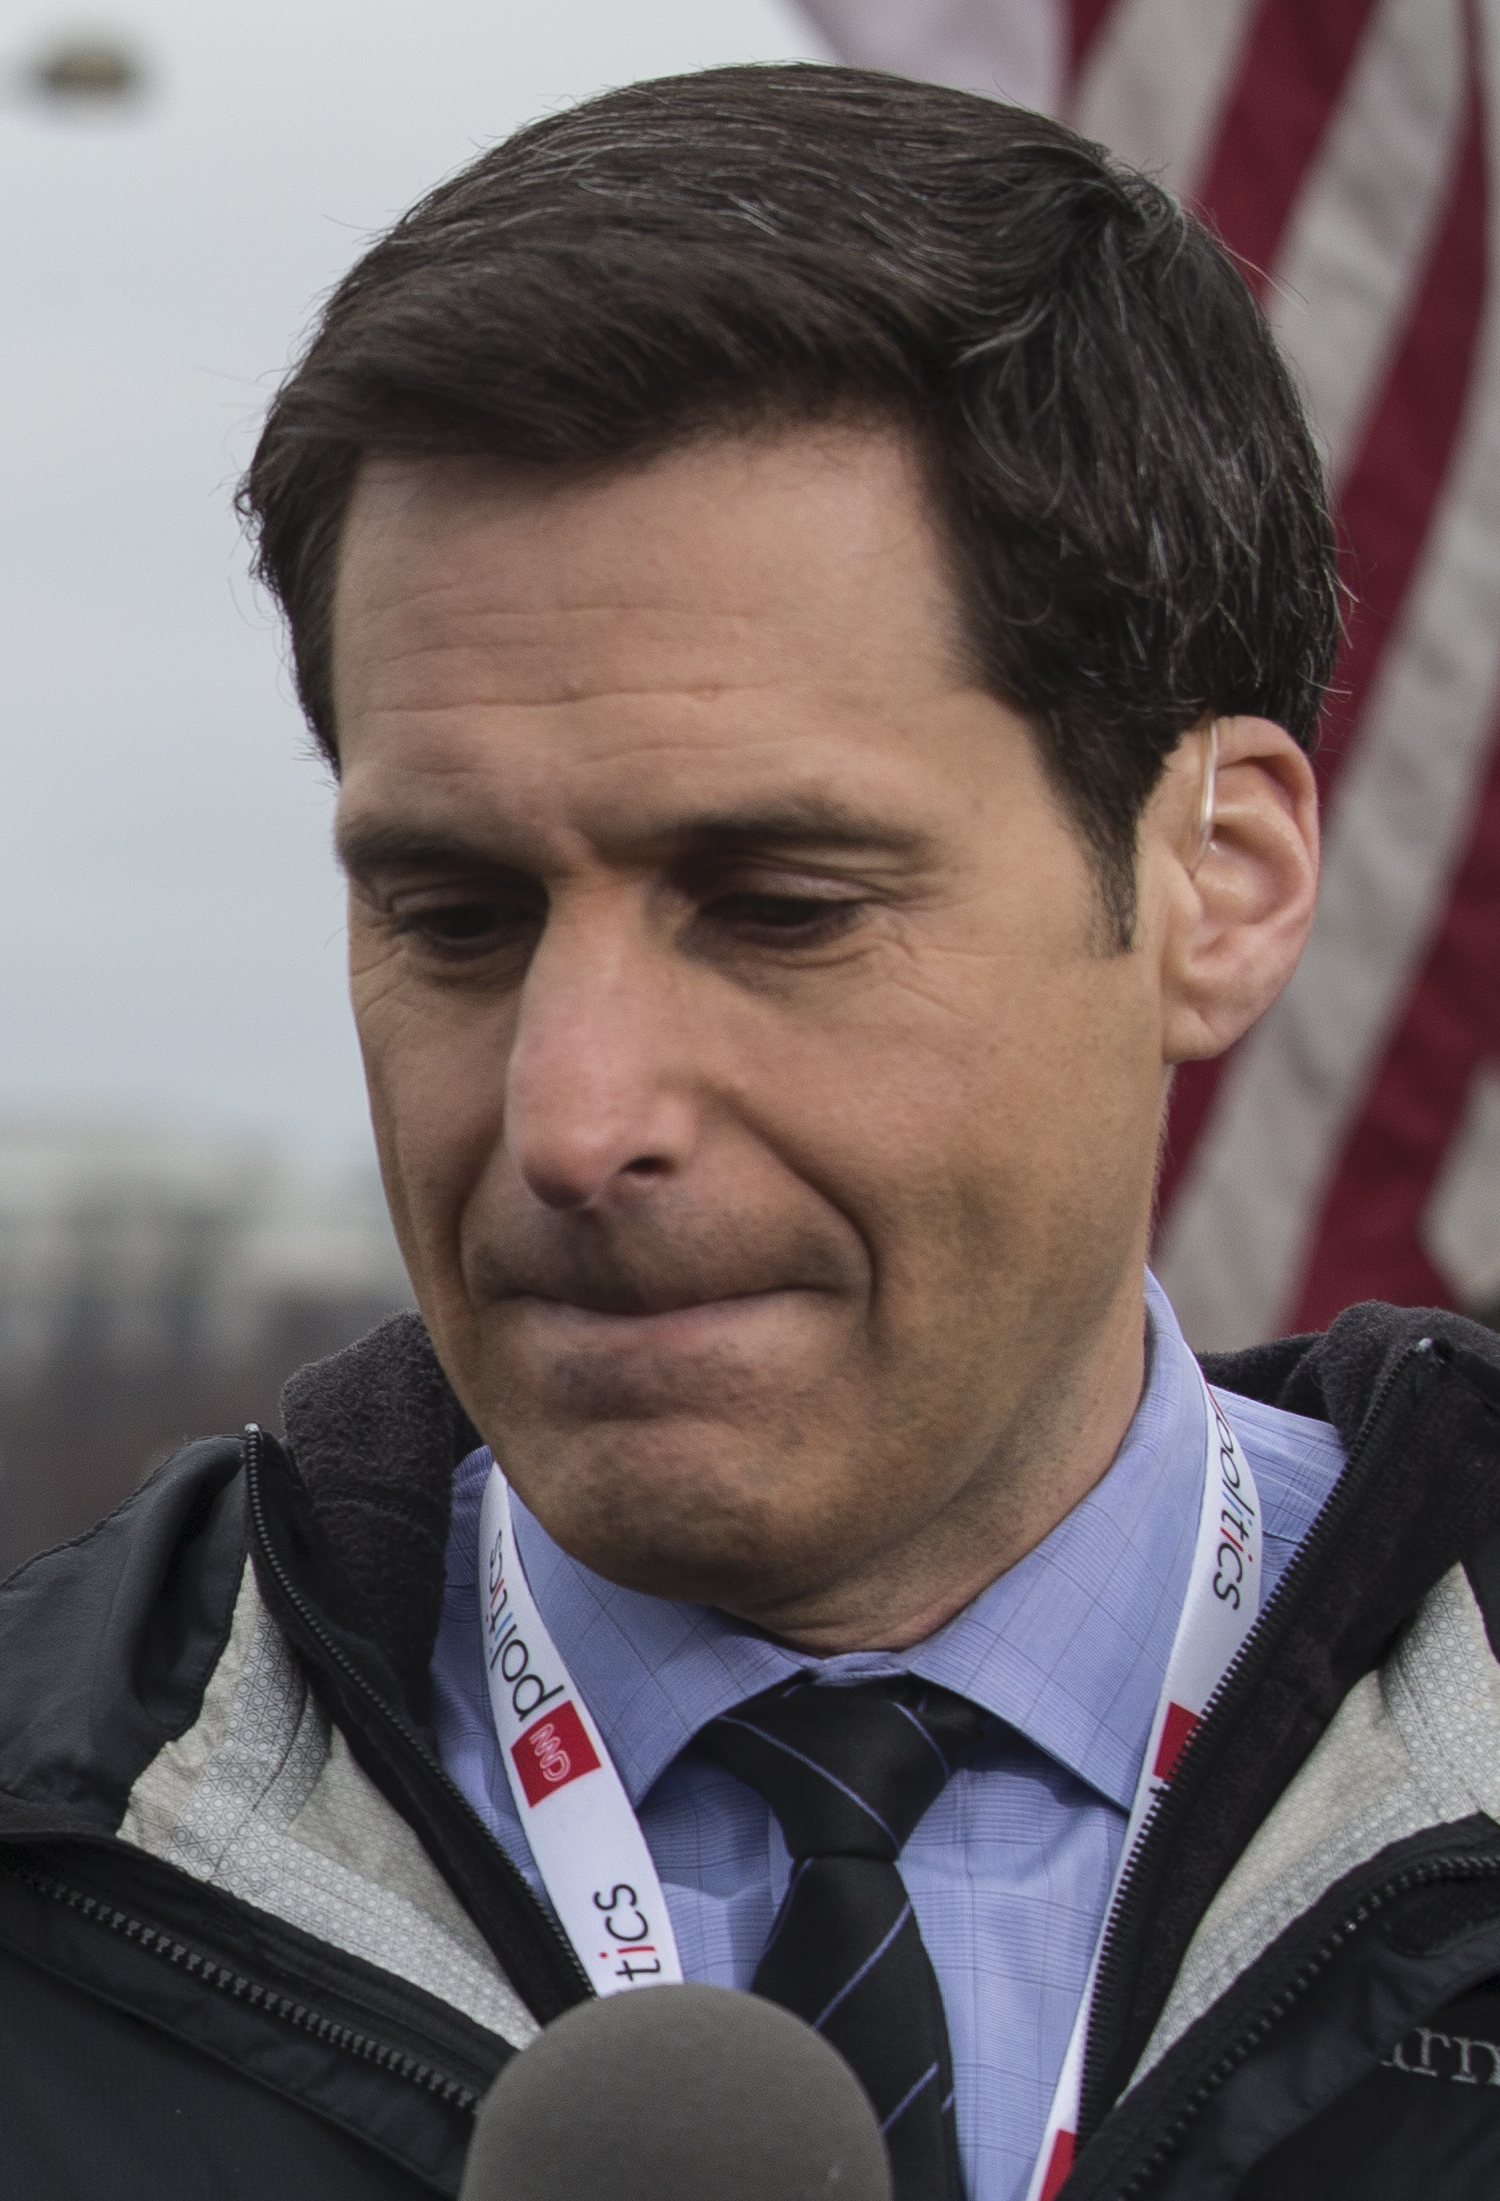 John Berman 2021: Wife, net worth, tattoos, smoking & body facts - Taddlr